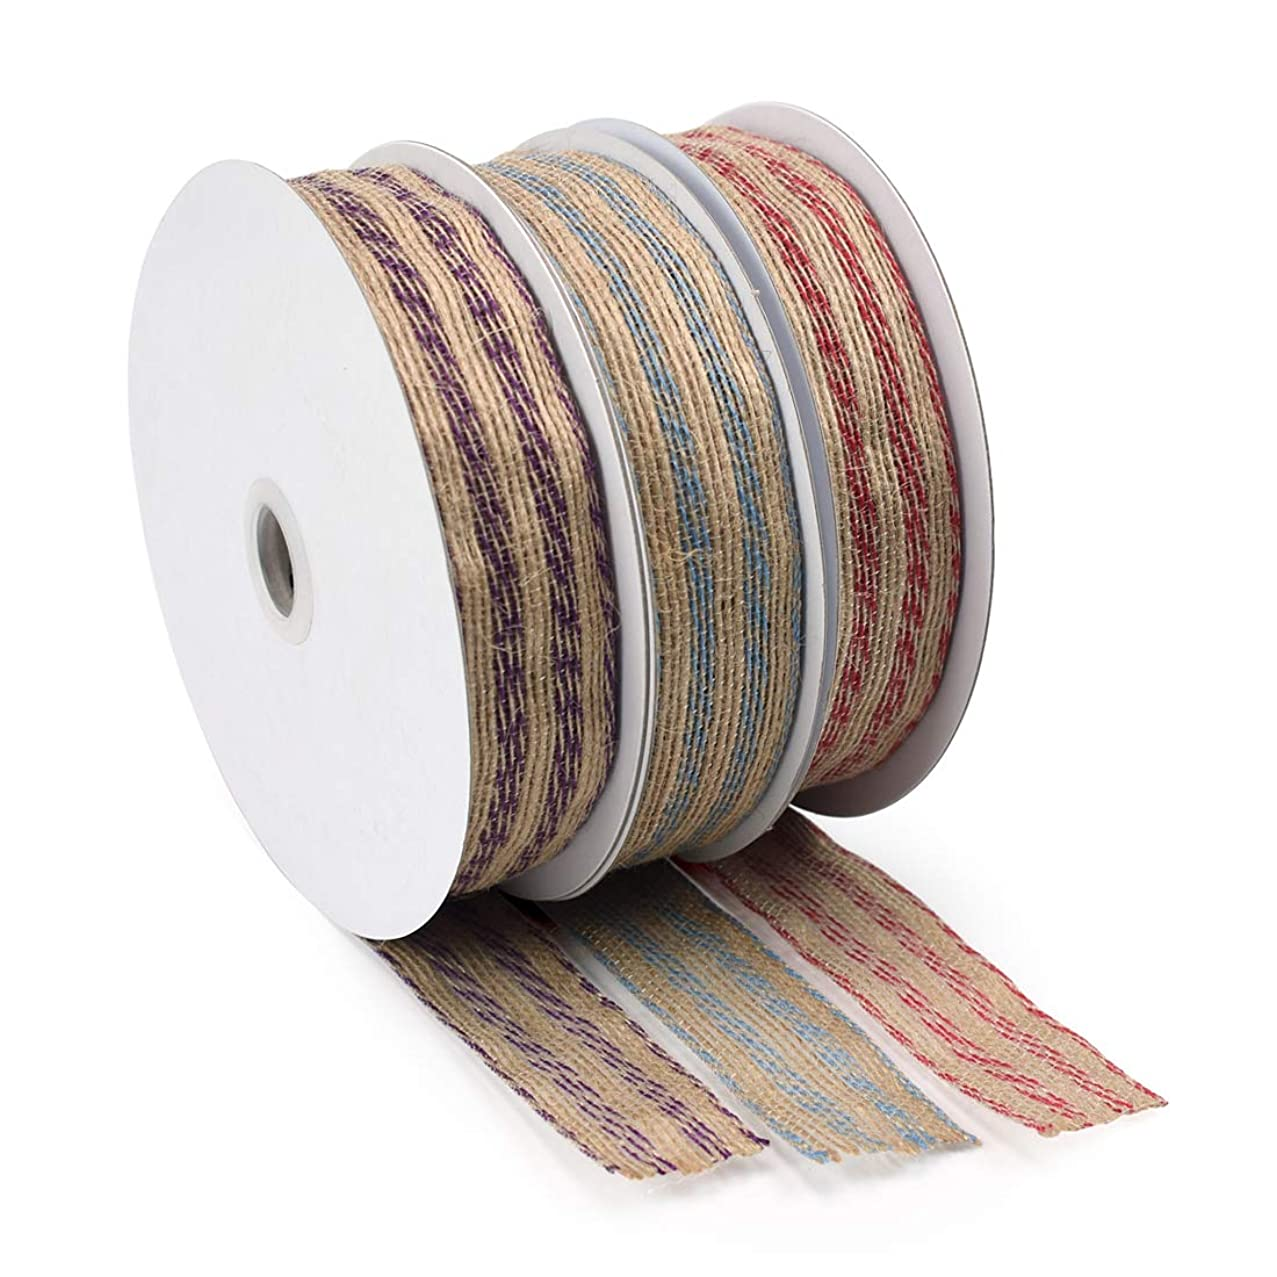 ZIIYAN 3 Rolls Multicolor Burlap Fabric Ribbon Roll for Wedding Events Party and Home Decor, 1.1 inch Wide, 3 Colors, 33 Feet Each Color